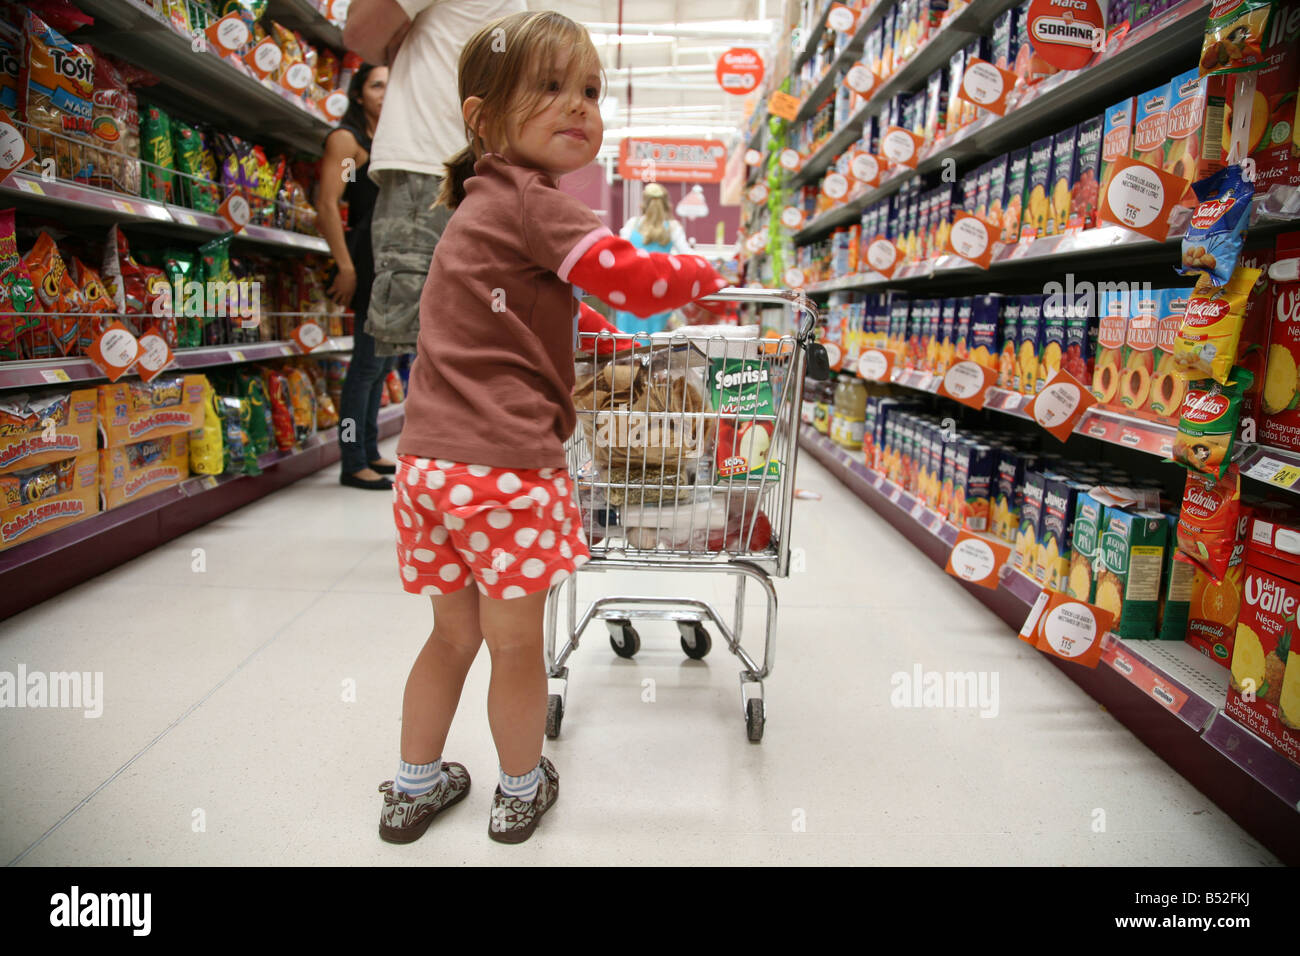 three year old girl pushing grocery cart while shopping in a Mexican grocery store Feeling sassy Feeling grownup - Stock Image